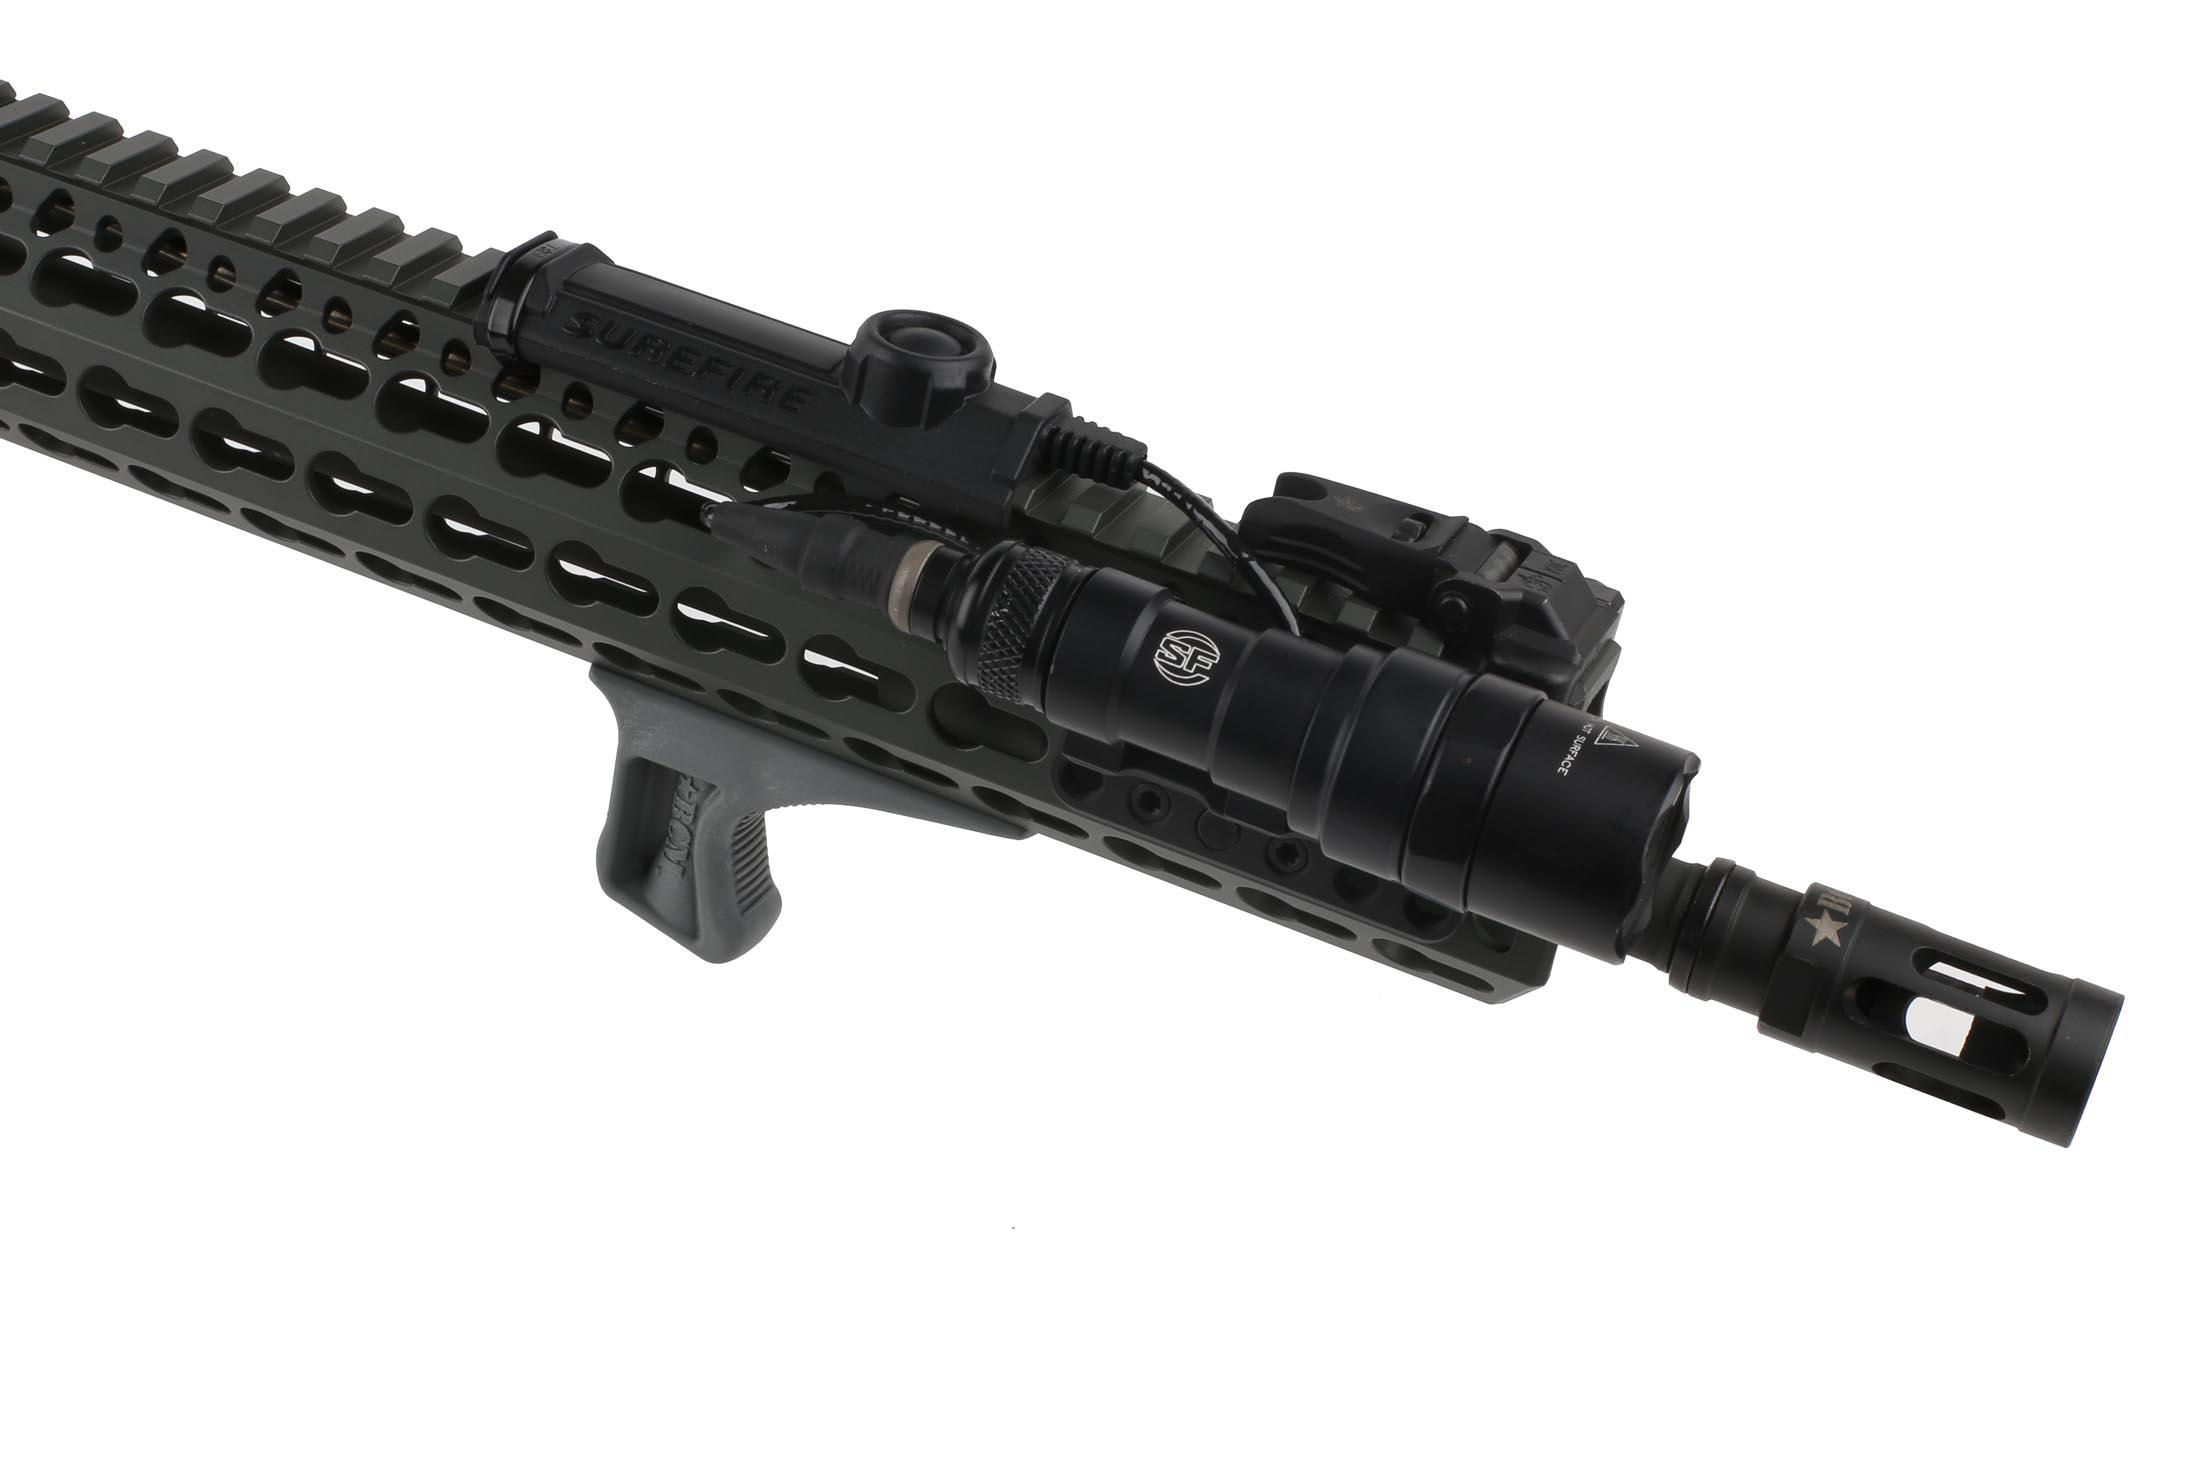 The BCM Gunfighter KAG Keymod angled grip in wolf gray attached to an AR15